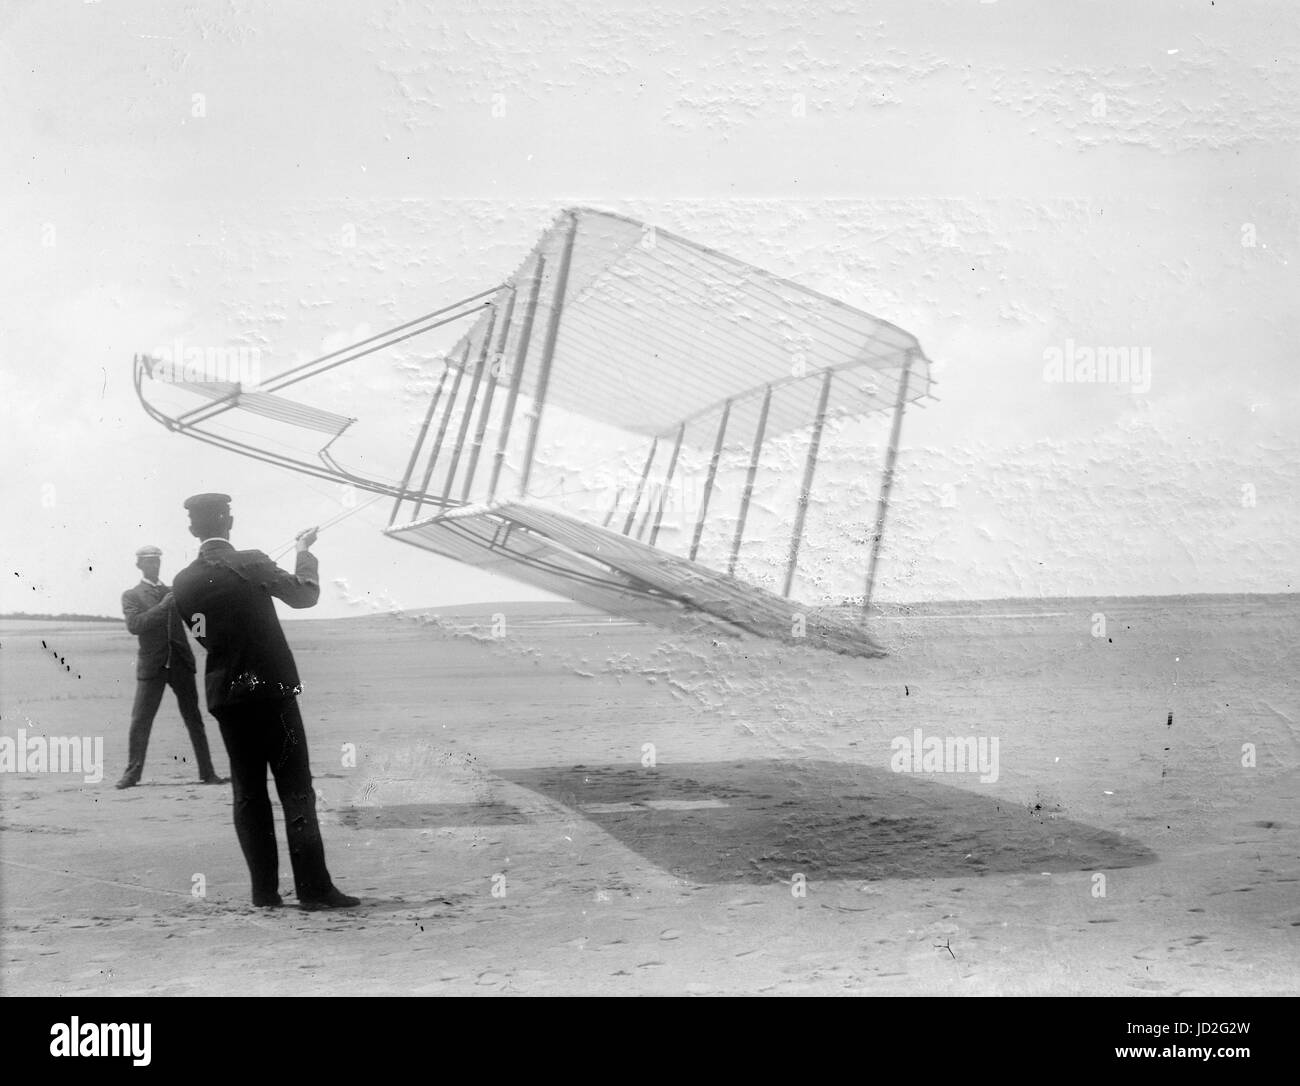 Side view of glider flying as a kite near the ground, Wilbur at left and Orville at right, glider turned forward - Stock Image